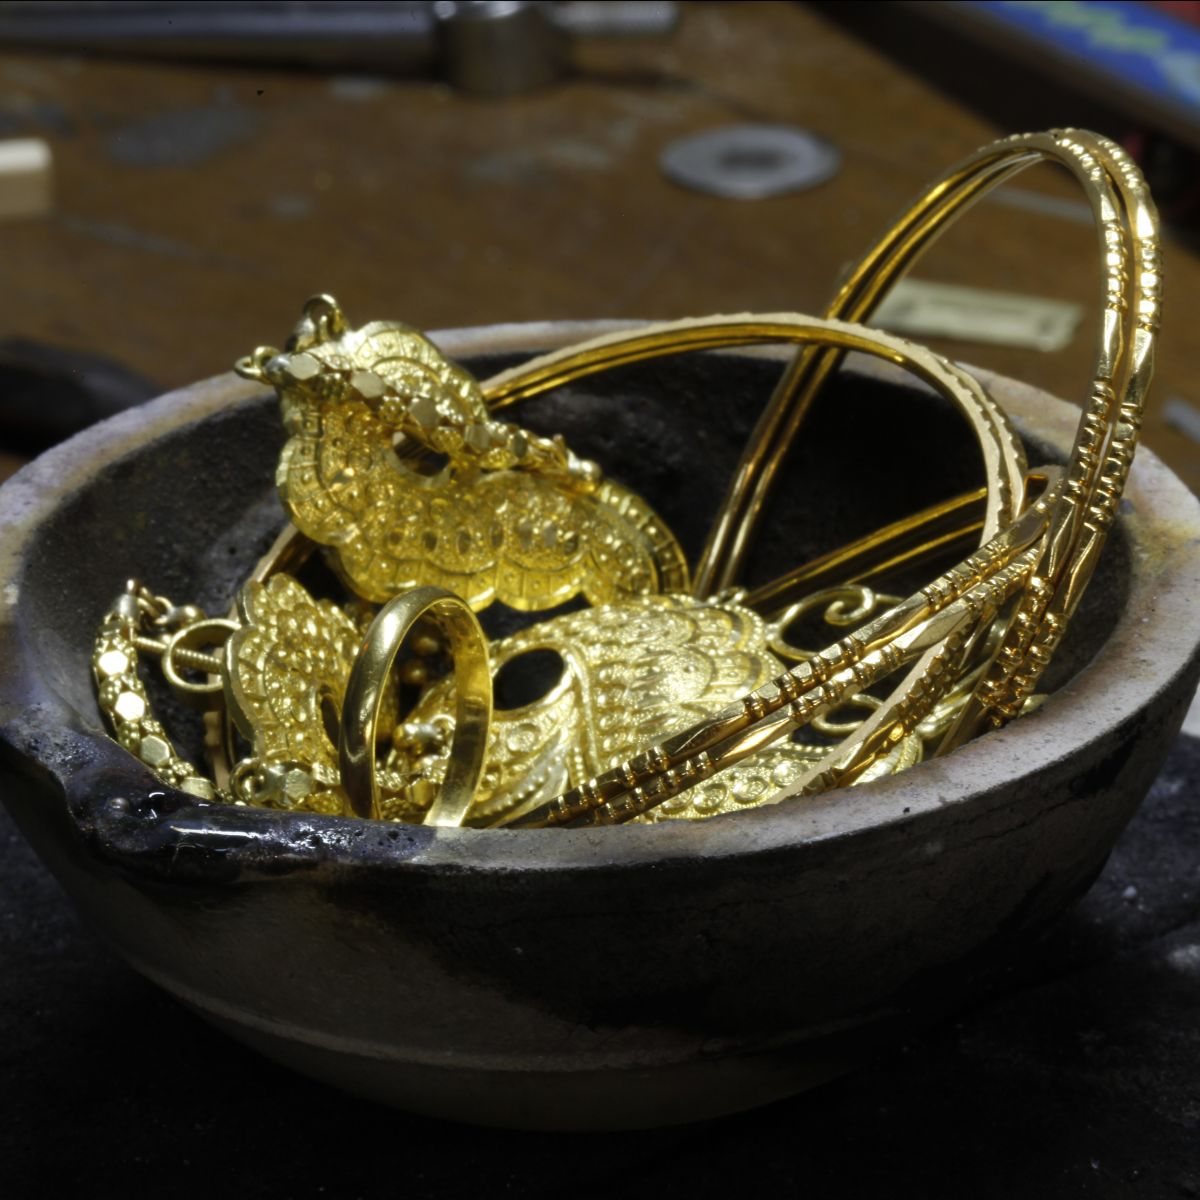 jewellery in crucible